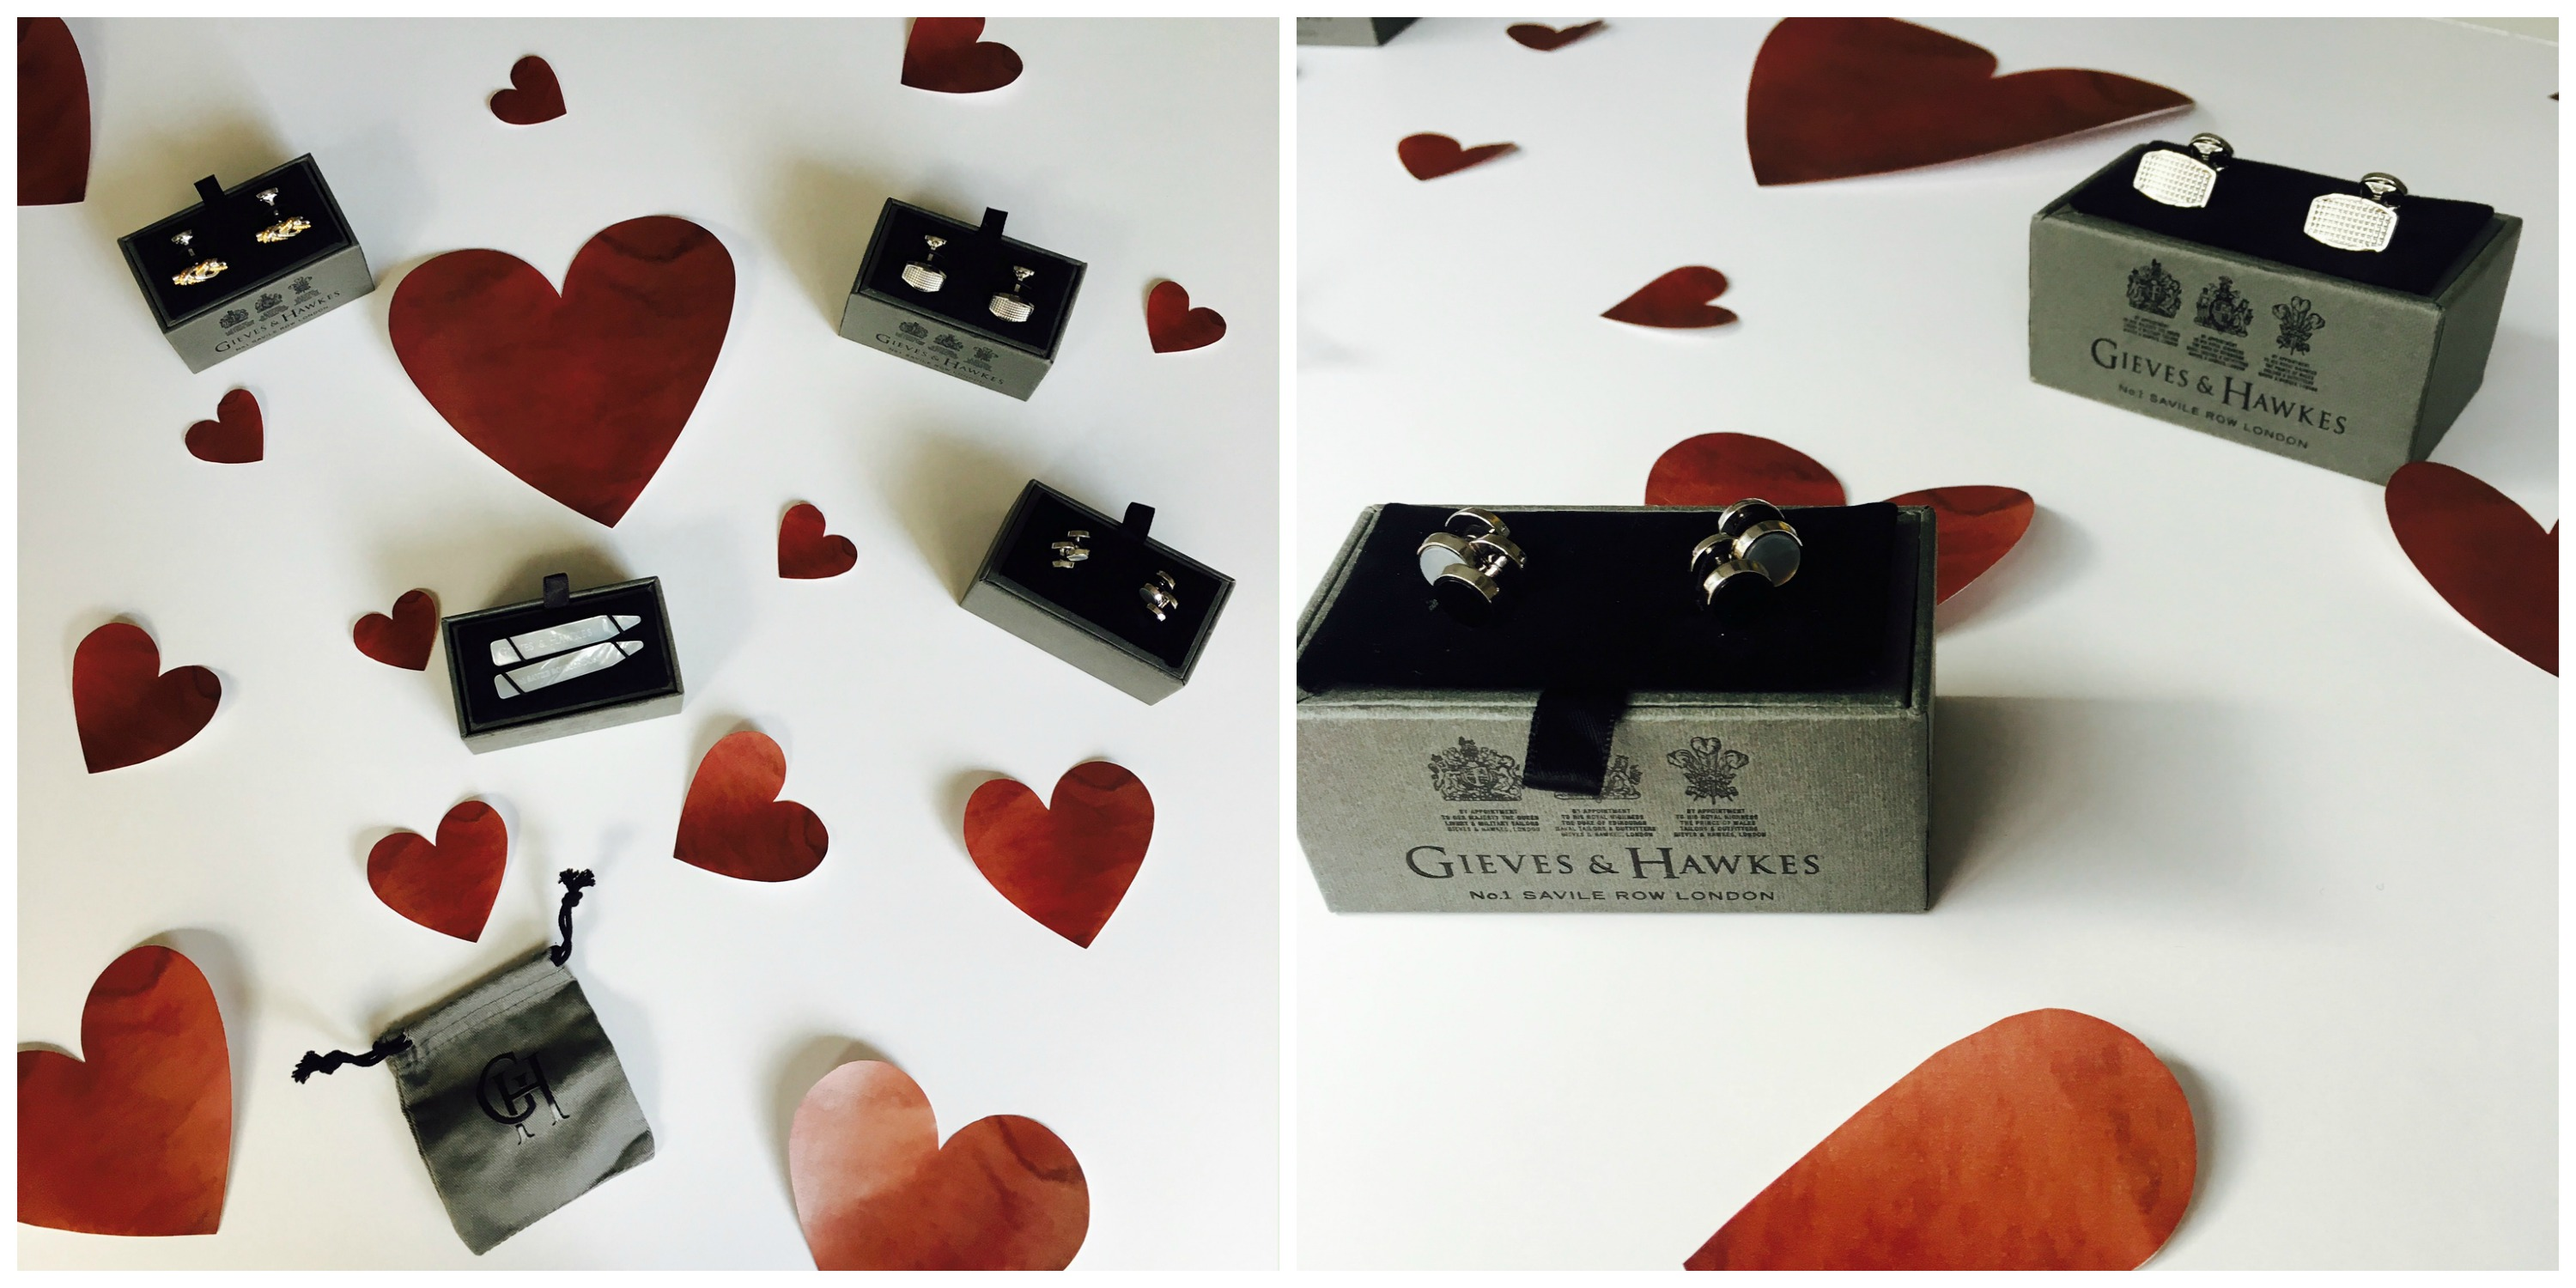 Gieves and Hawkes Mailbox valentines day gift ideas